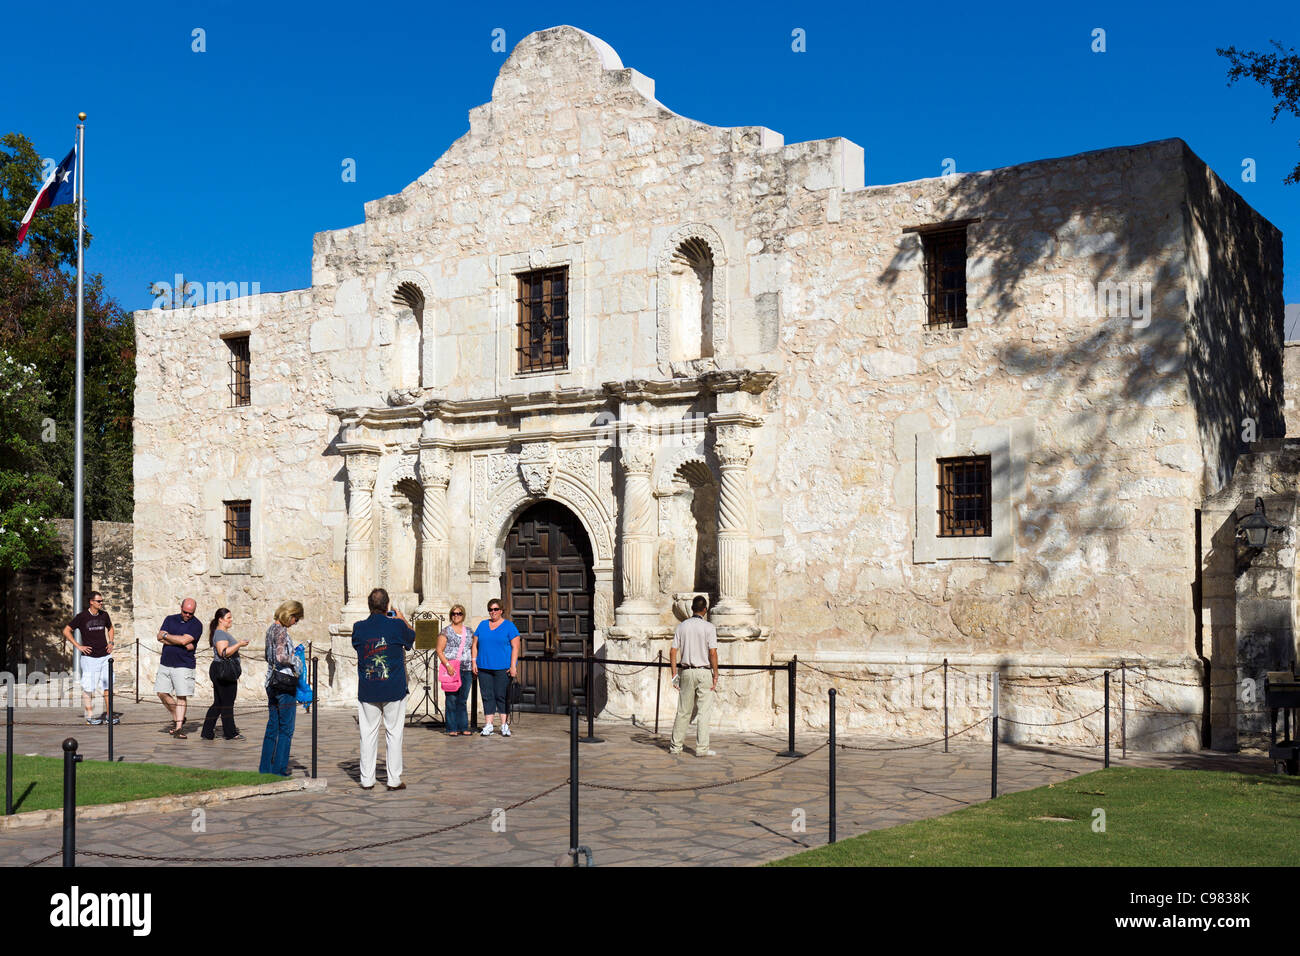 Tourists taking photographs in front of the Alamo Mission, site of the famous battle, San Antonio, Texas, USA - Stock Image